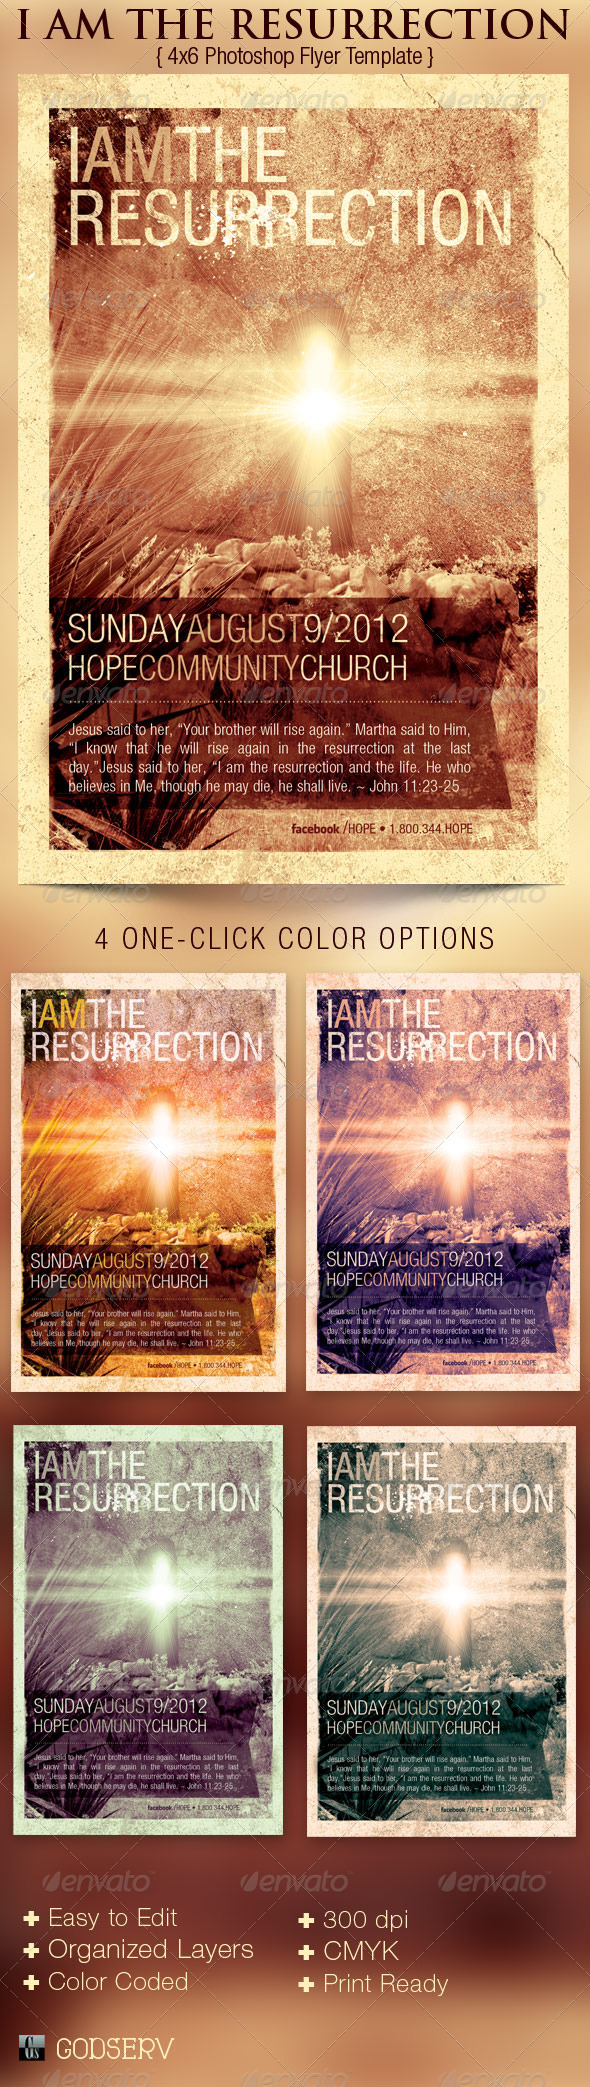 I Am The Resurrection Church Flyer Template - Church Flyers